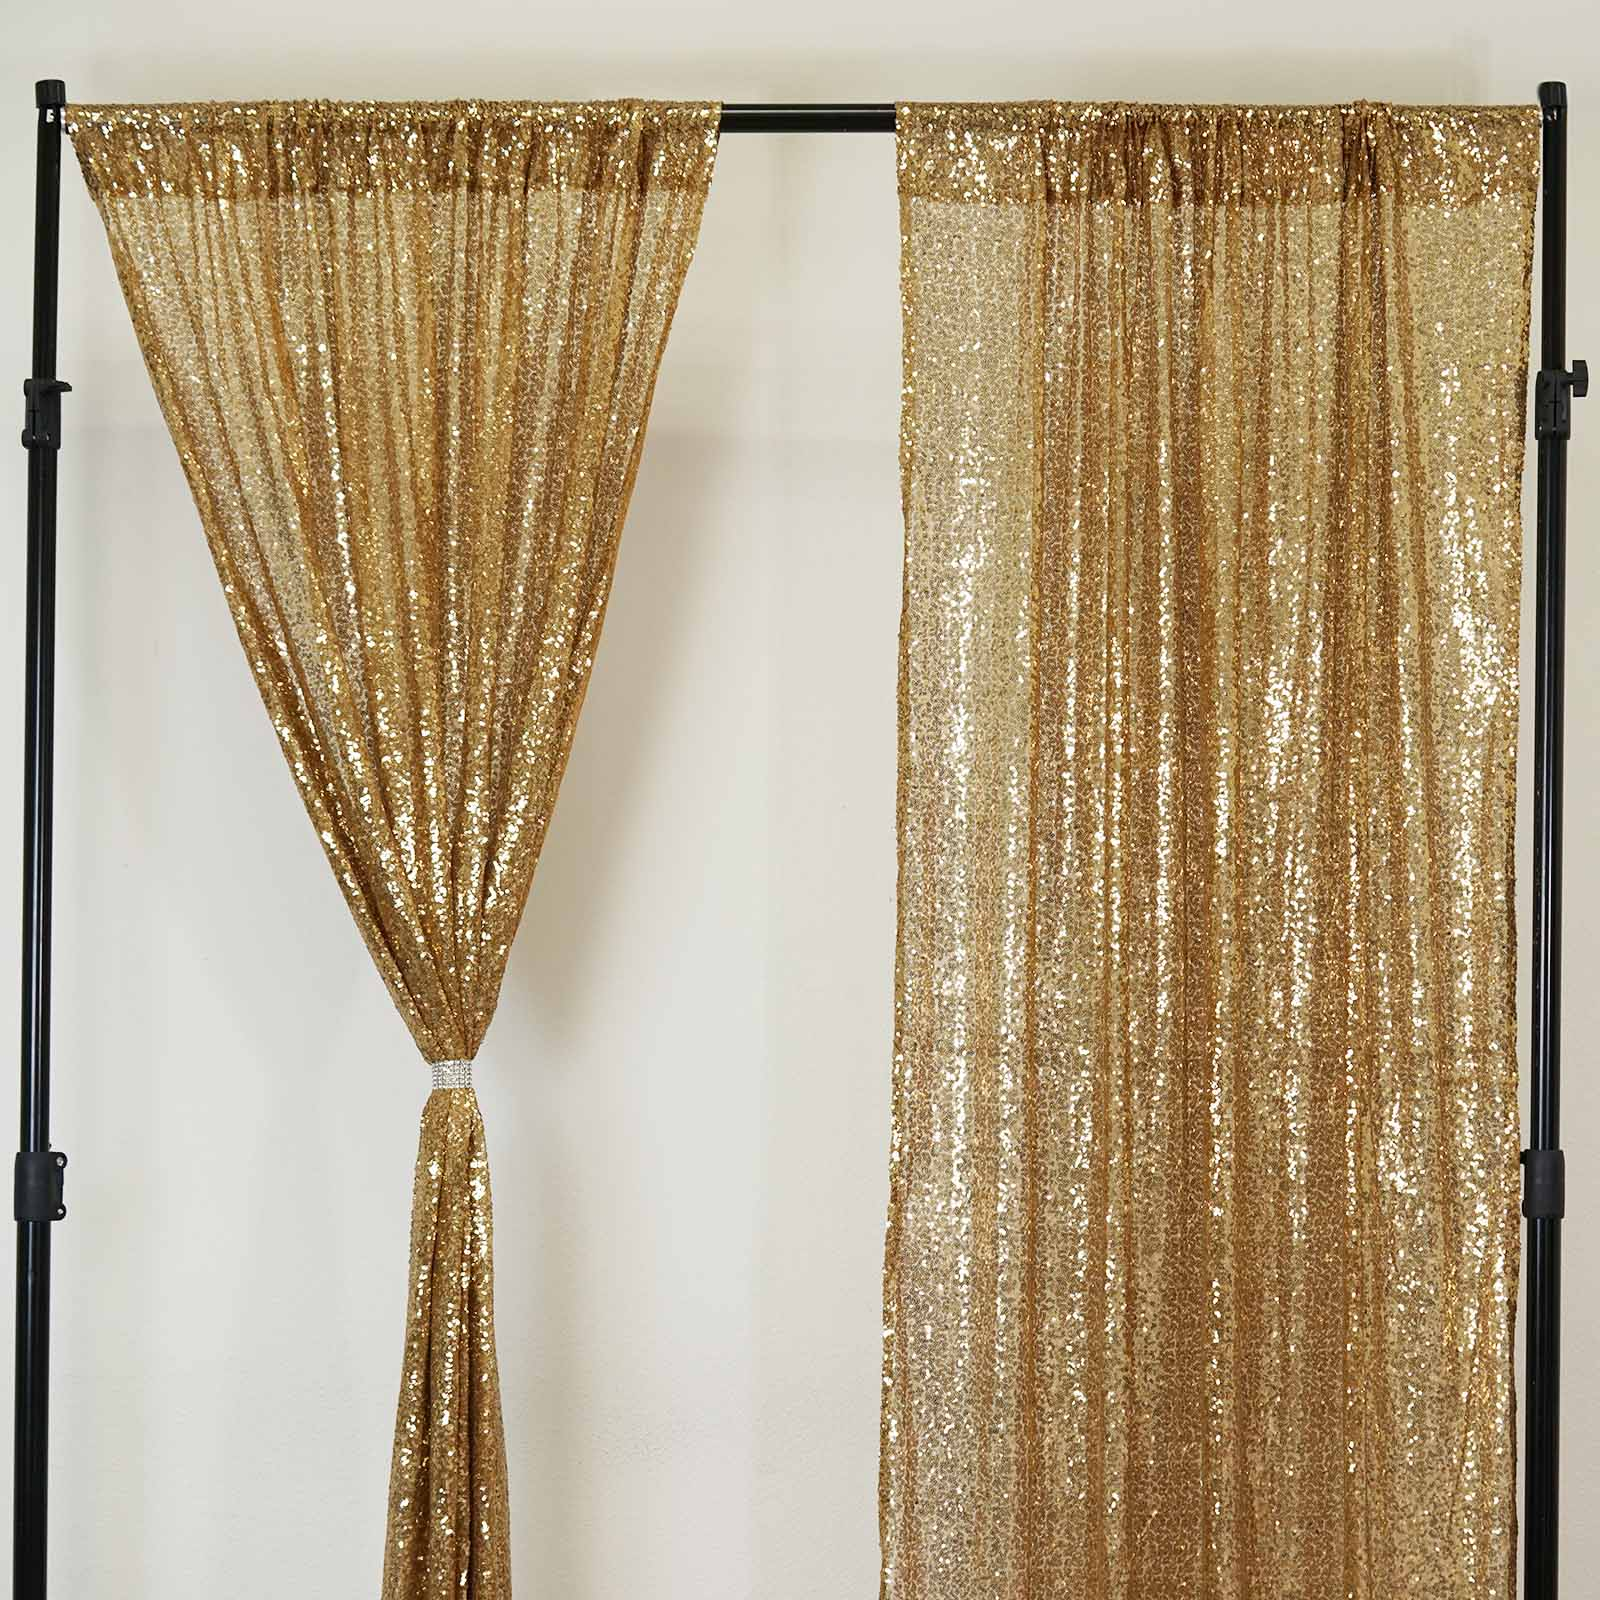 Glitzy Sequin Curtains 52x64 Gold Pack Of 2 Window Treatment Panels With Rod Pockets